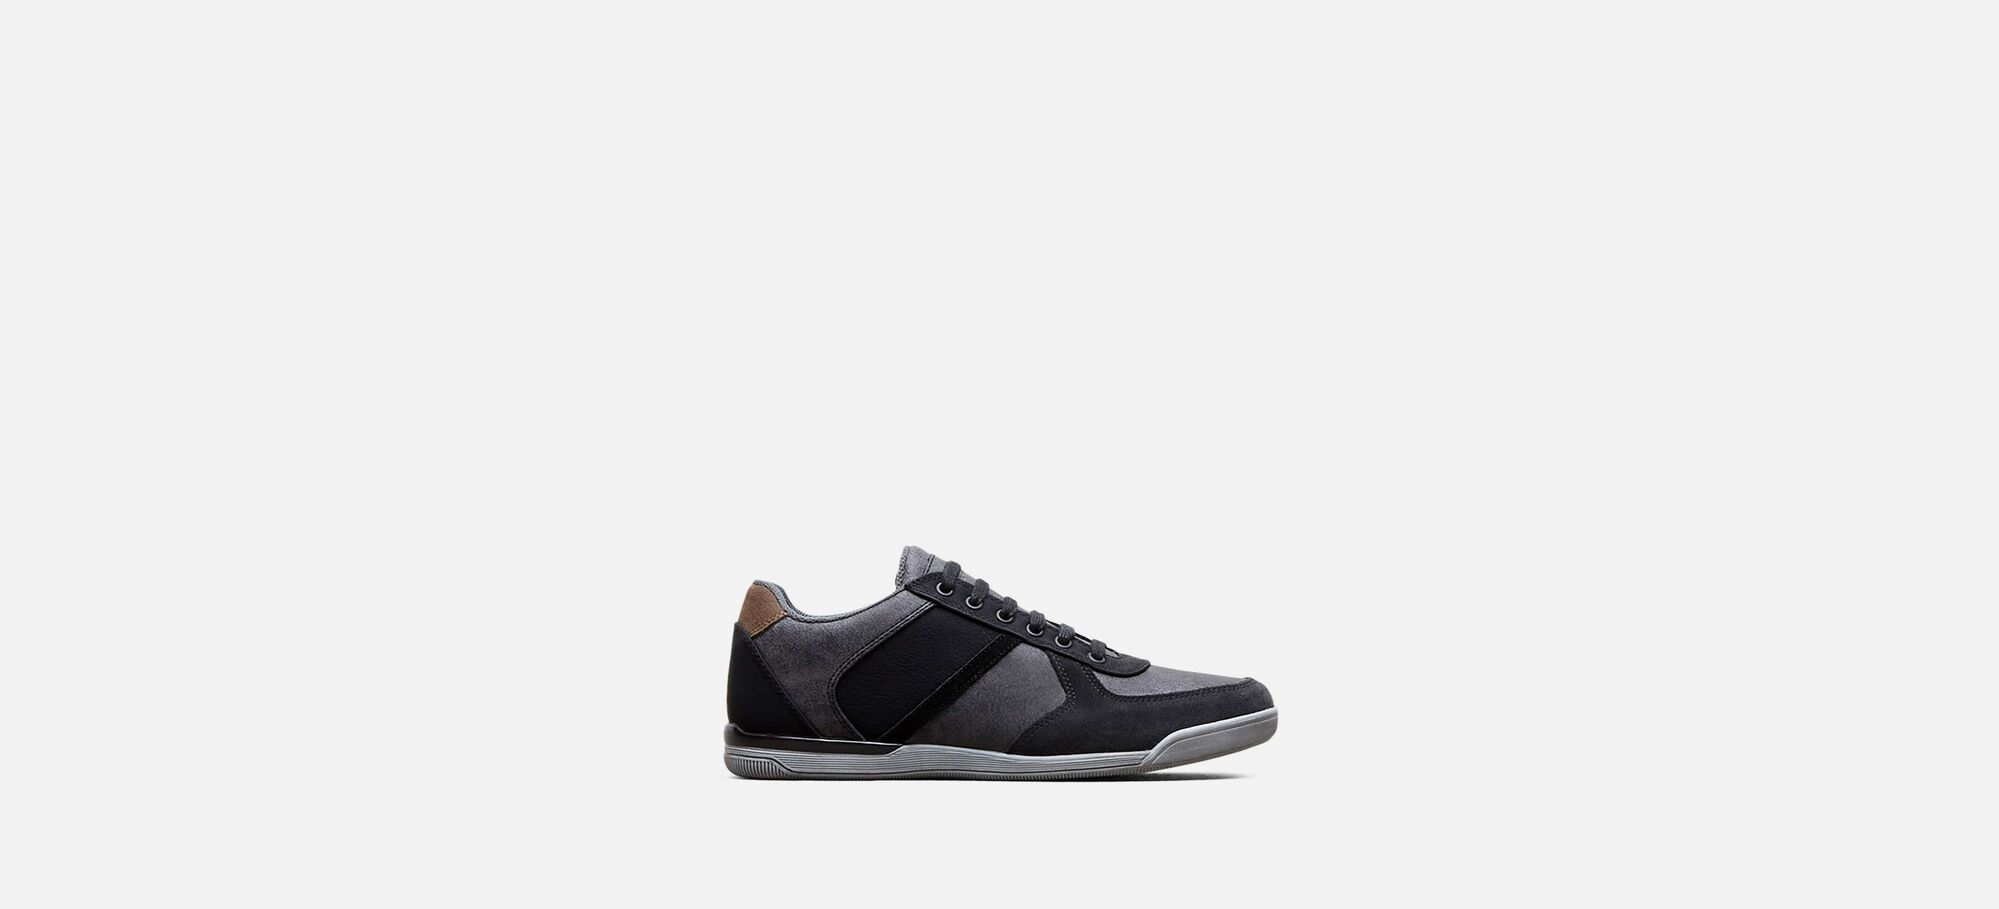 Like No Other Low Top Sneaker